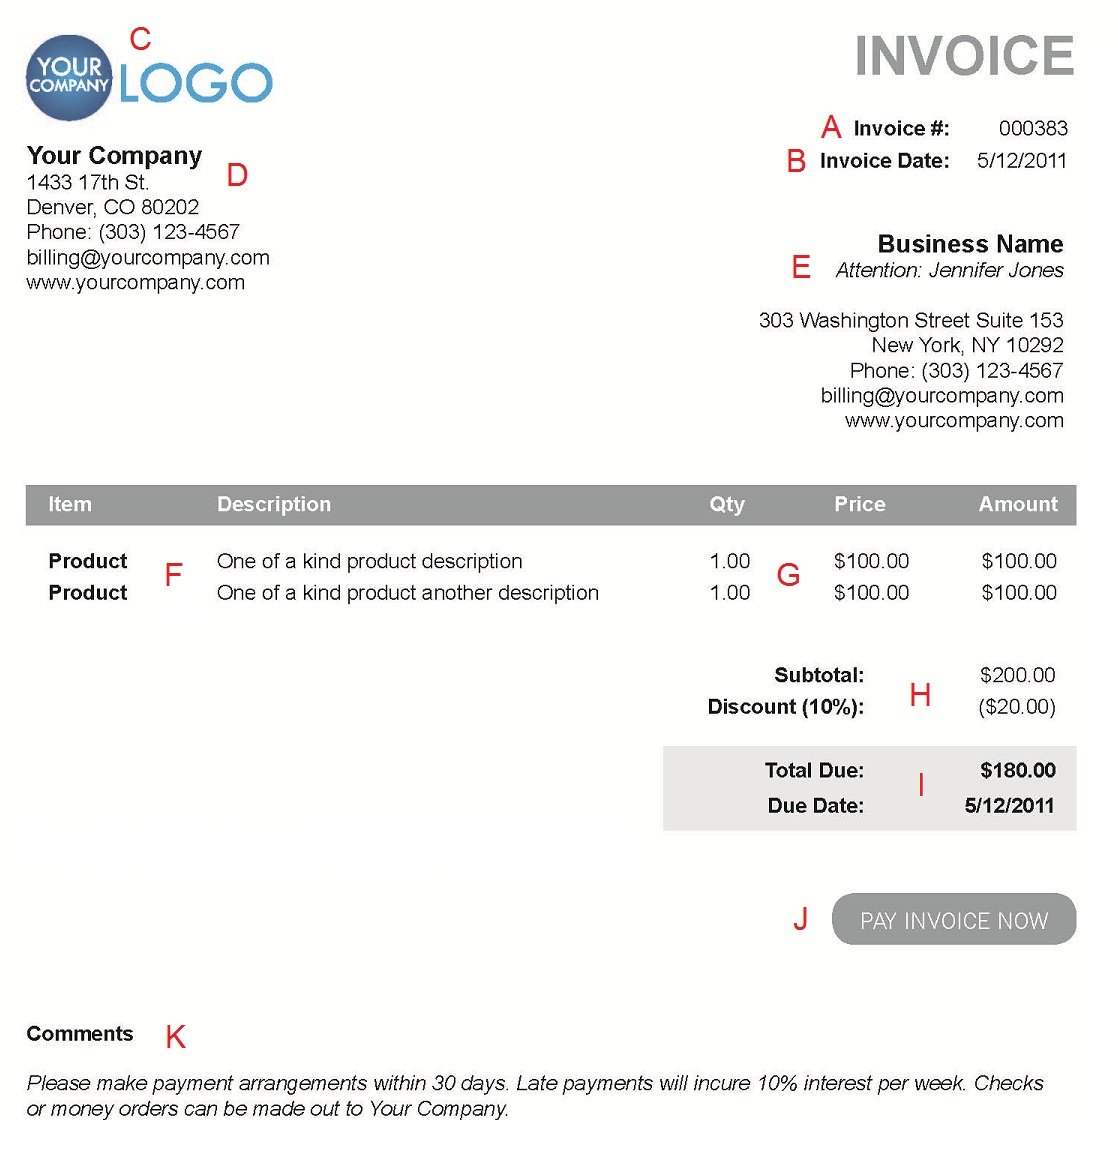 Ultrablogus  Scenic The  Different Sections Of An Electronic Payment Invoice With Excellent A  With Charming Ltd Company Invoice Template Also Invoice To Print In Addition Examples Of Invoice Templates And Free Template For Invoices As Well As Proforma Tax Invoice Additionally Invoice Formats In Word From Paysimplecom With Ultrablogus  Excellent The  Different Sections Of An Electronic Payment Invoice With Charming A  And Scenic Ltd Company Invoice Template Also Invoice To Print In Addition Examples Of Invoice Templates From Paysimplecom